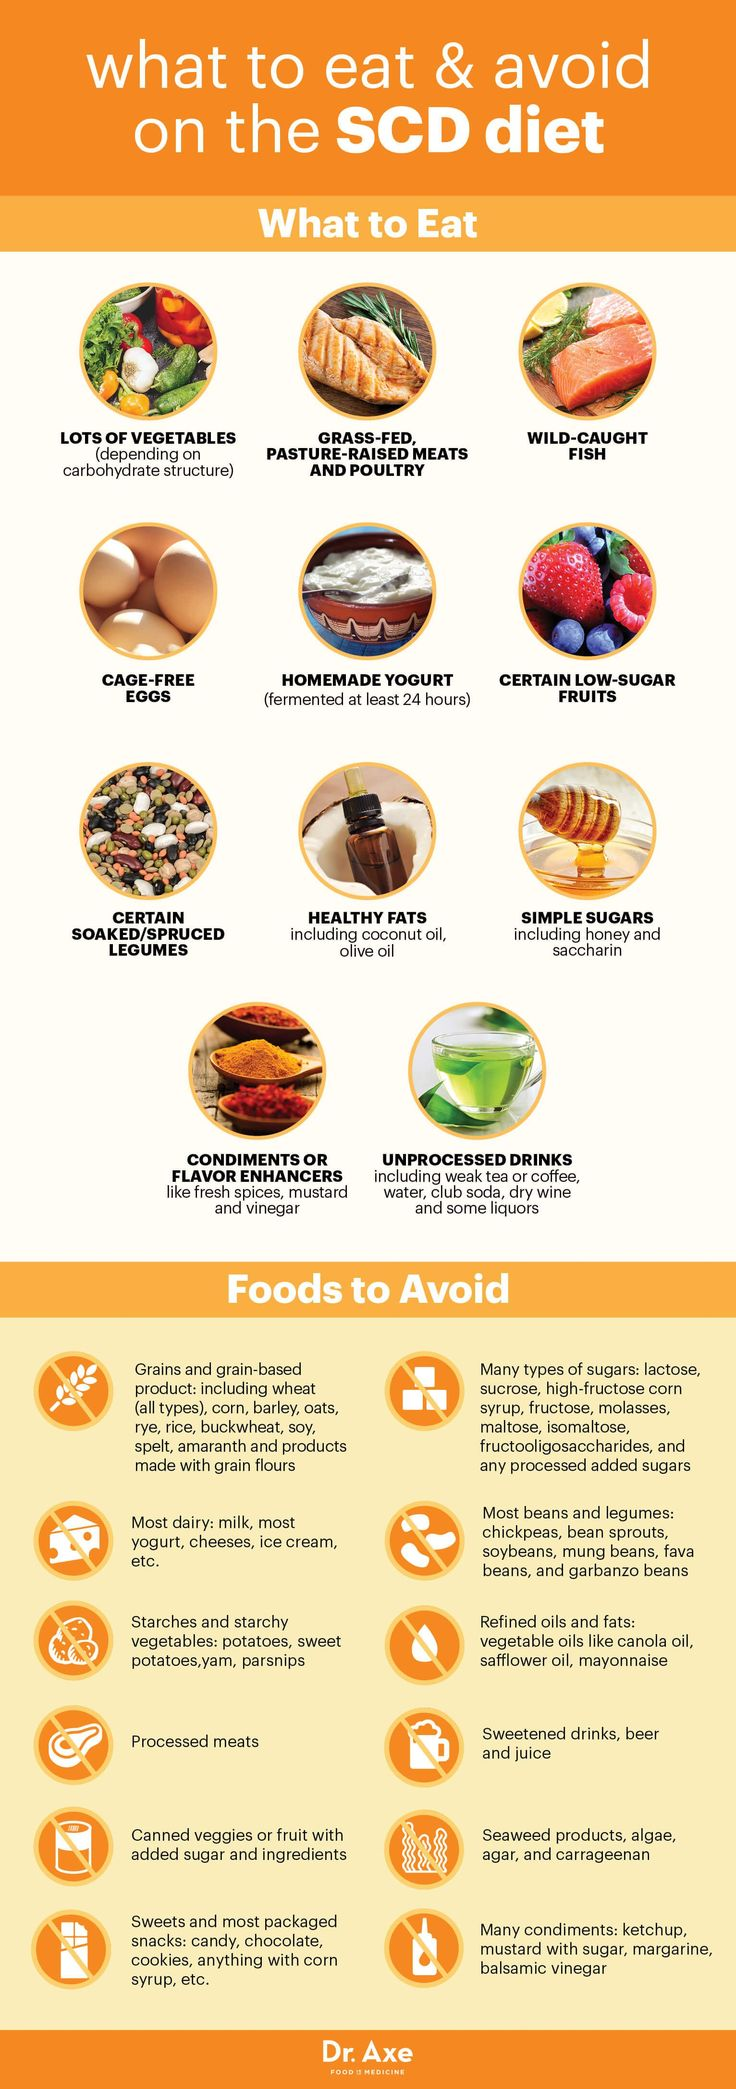 SCD diet foods to eat and avoid - Dr. Axe